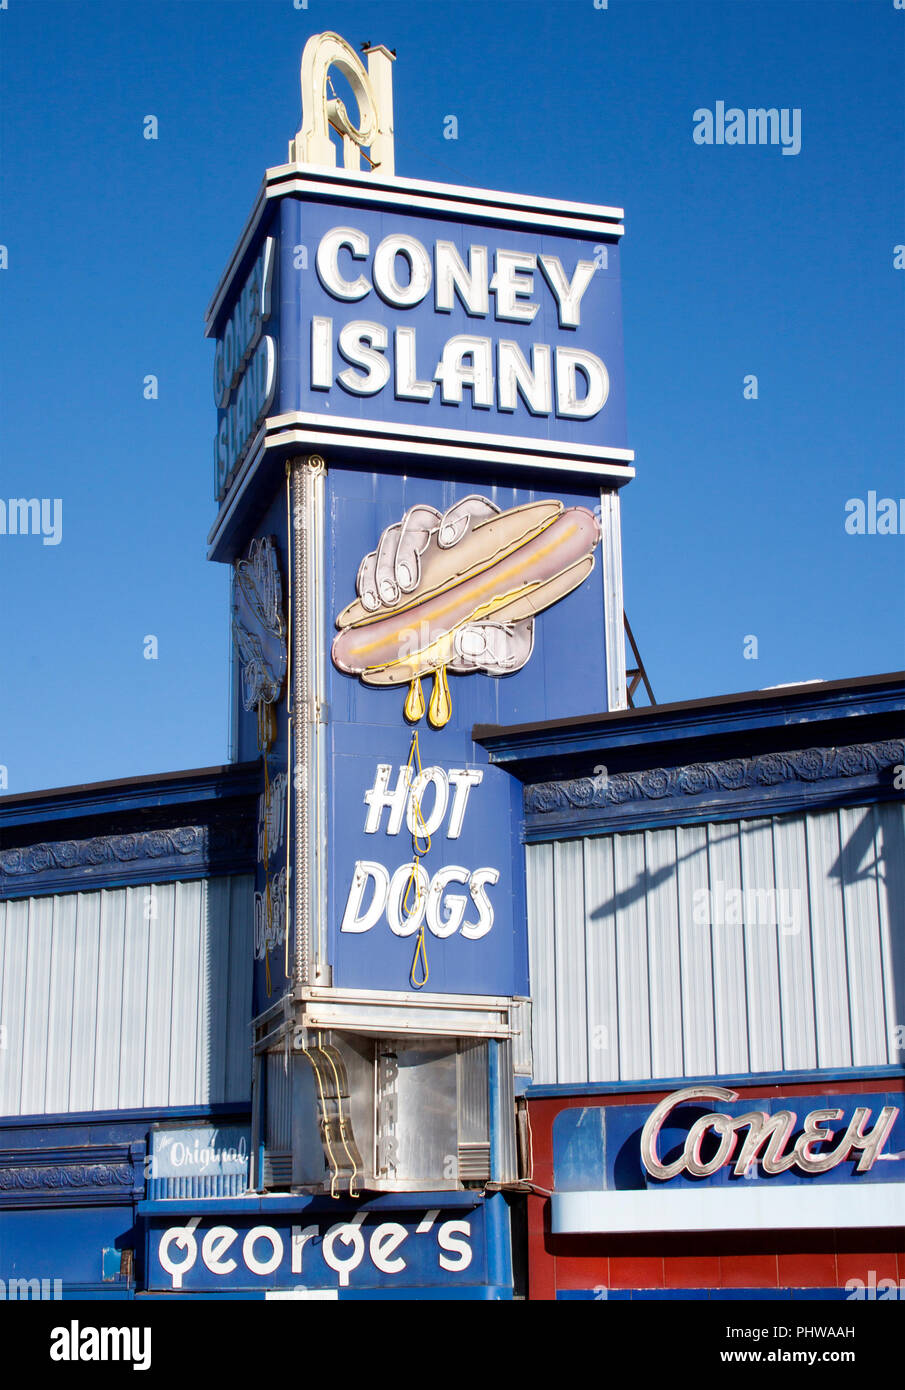 Coney Island Hot Dogs Diner in Worcestor Massachusetts - Stock Image